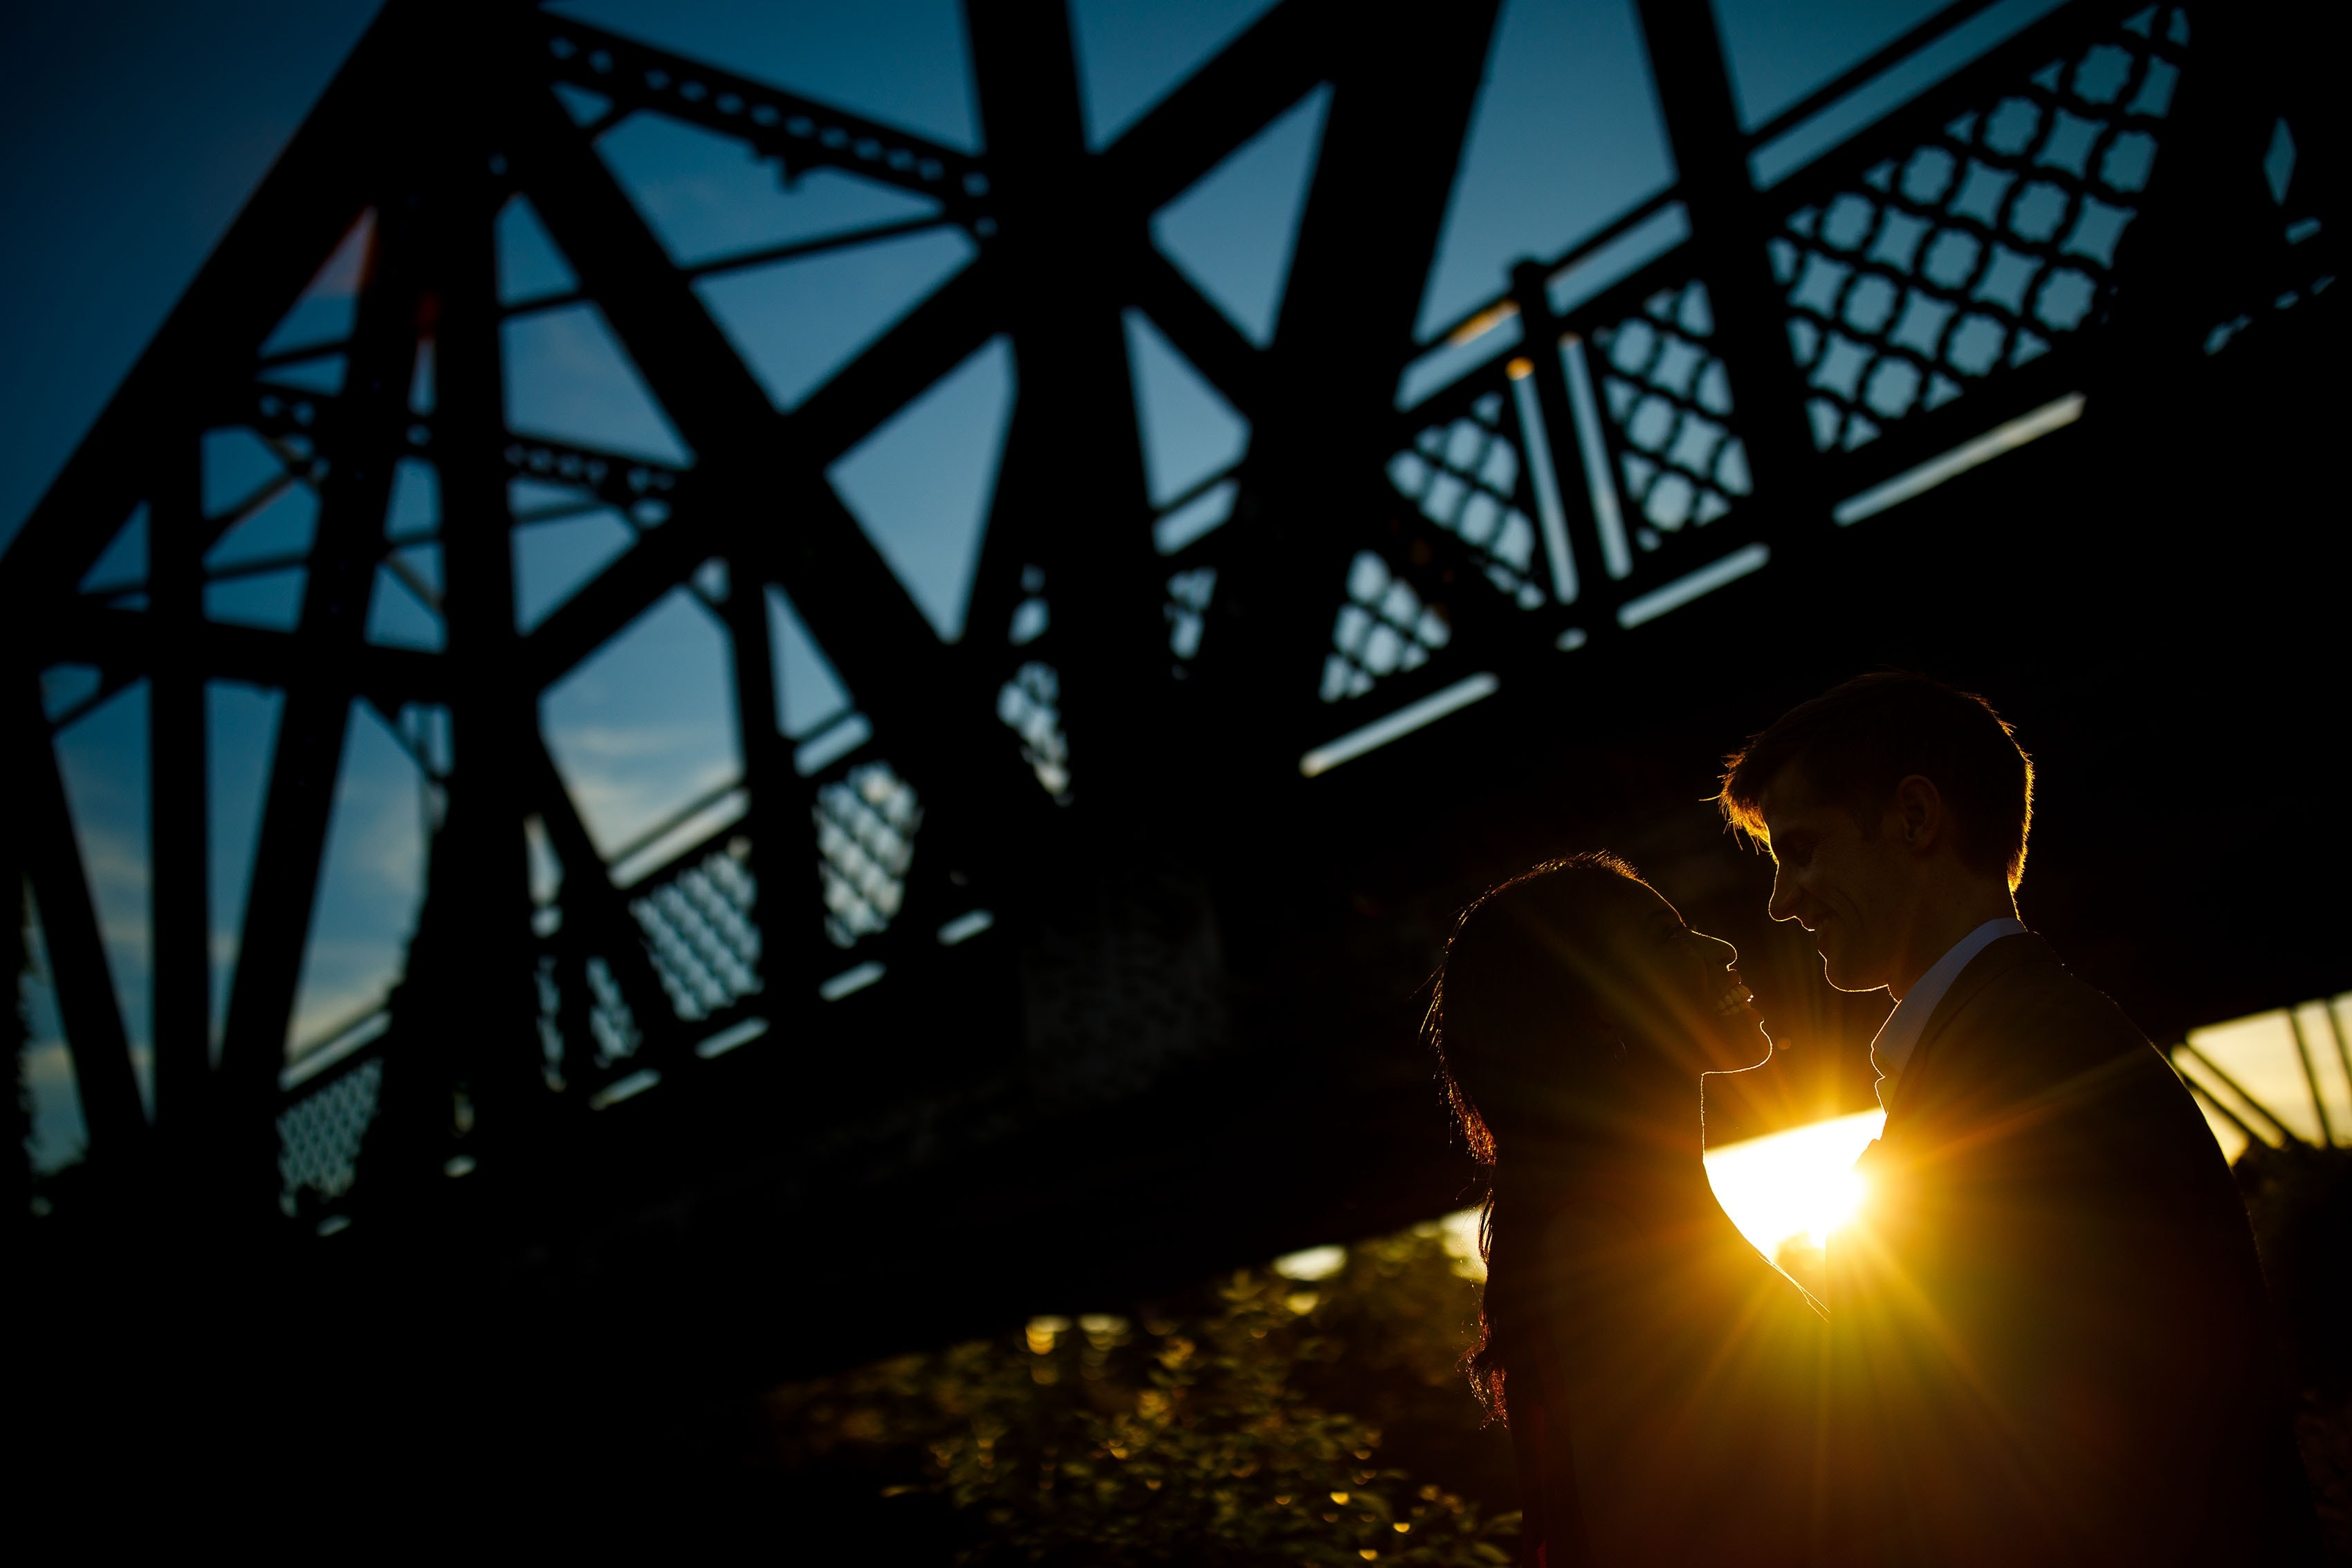 The sun sets behind a couple and the Wynkoop Street Bridge in Denver